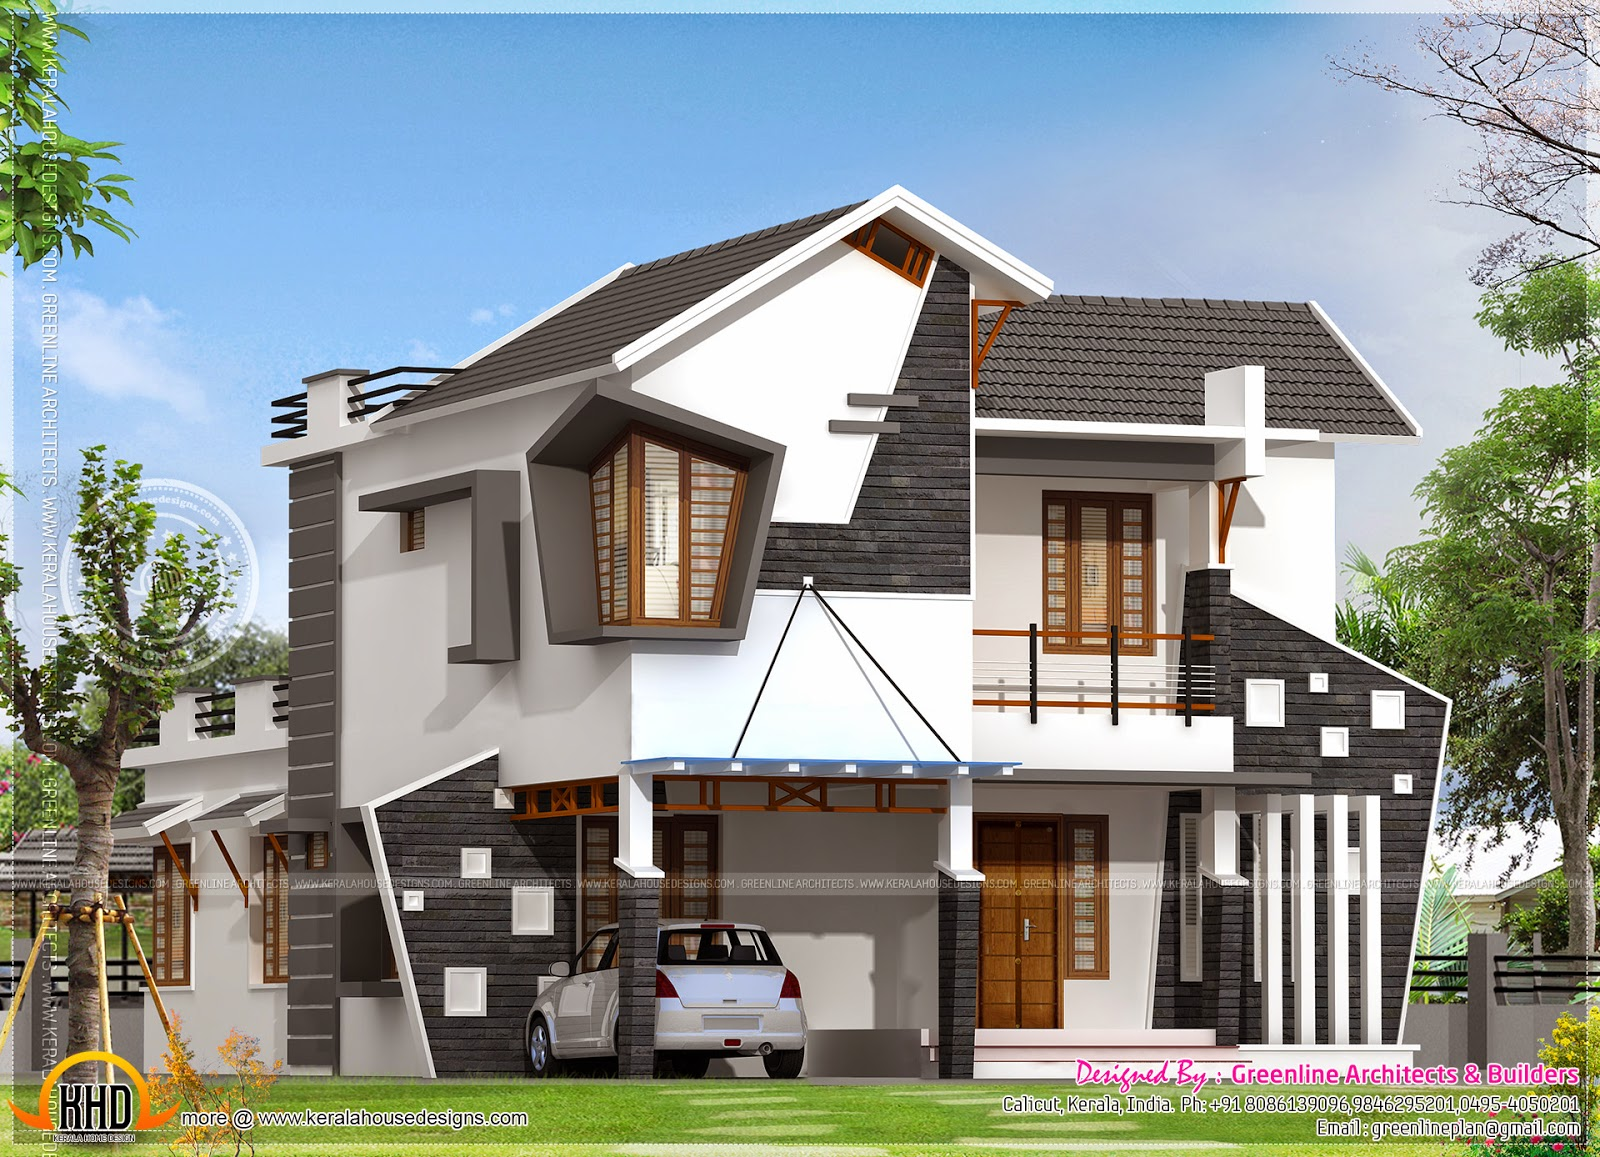 Unique house exterior in 2154 square feet kerala home for Custom house plans designs